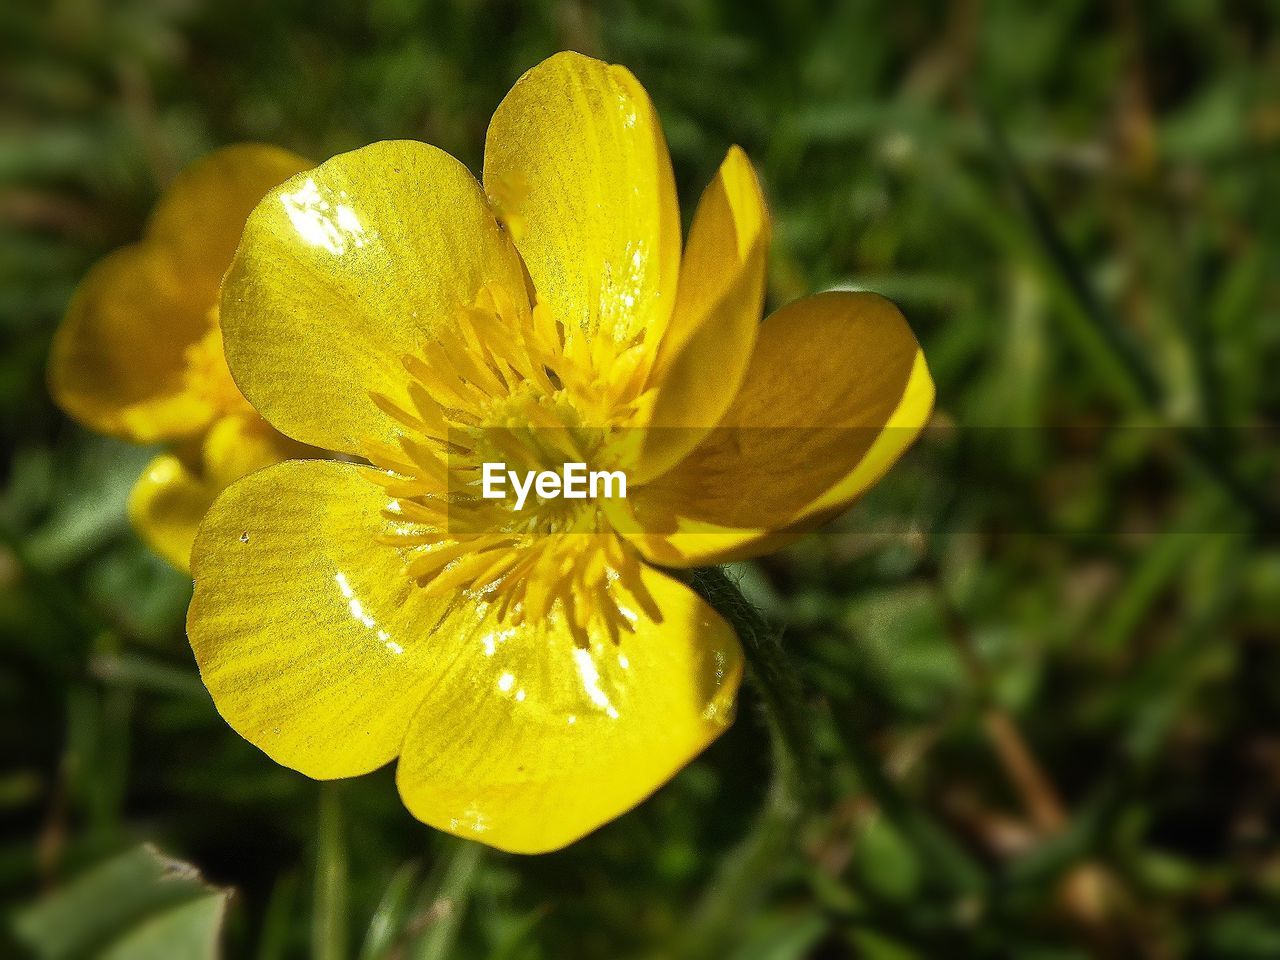 flower, yellow, petal, growth, nature, fragility, beauty in nature, freshness, flower head, no people, plant, close-up, outdoors, focus on foreground, day, blooming, springtime